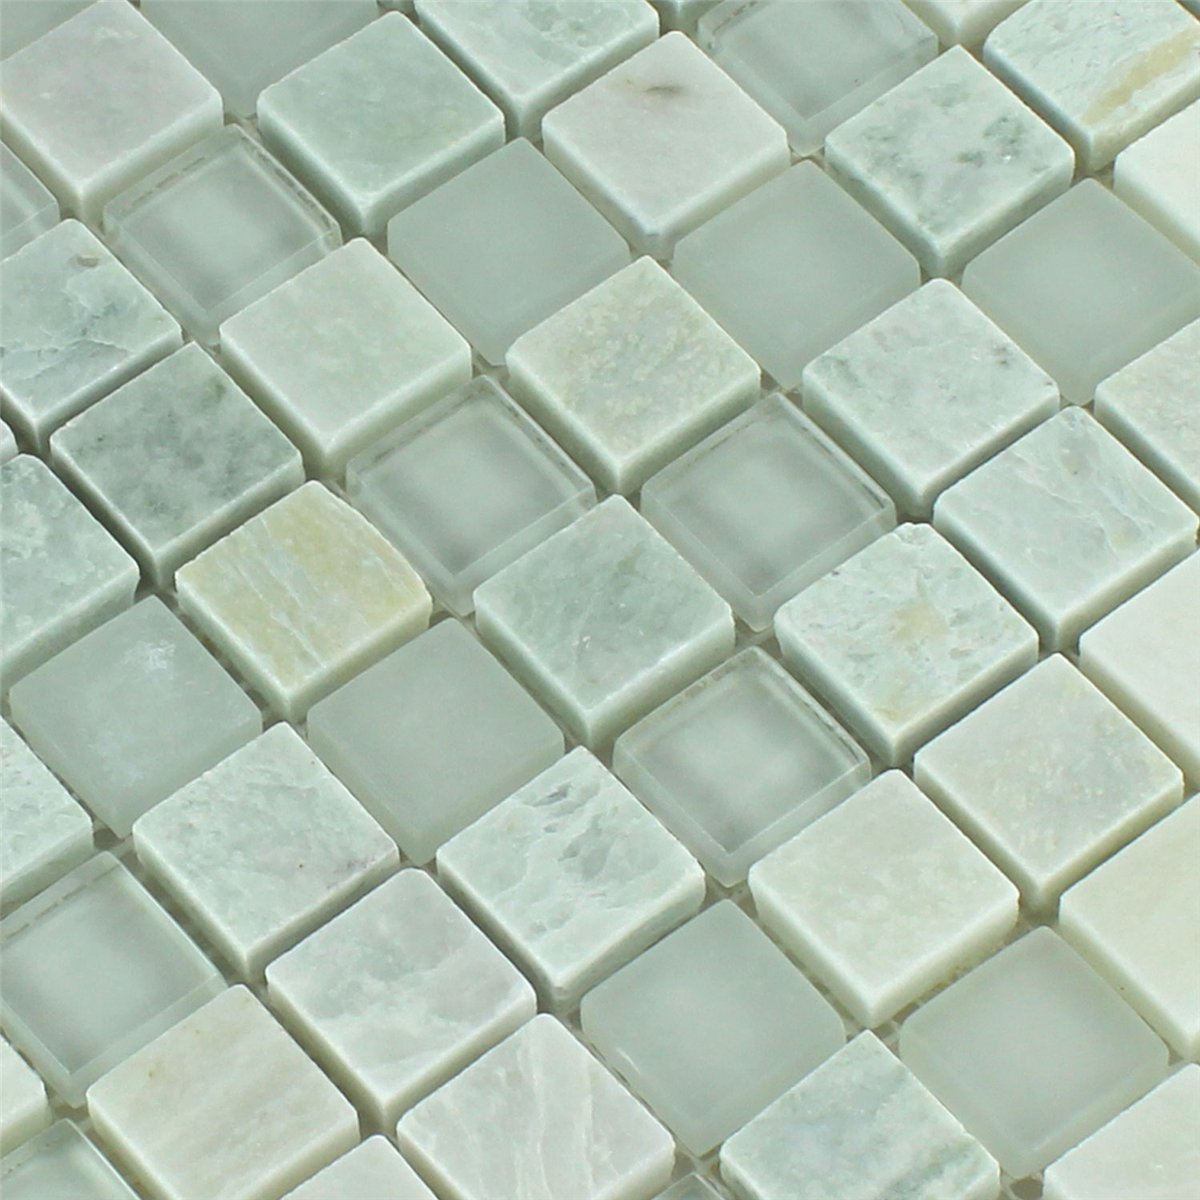 Carrelage design carrelage blanc marbr moderne design for Carrelage de marbre blanc